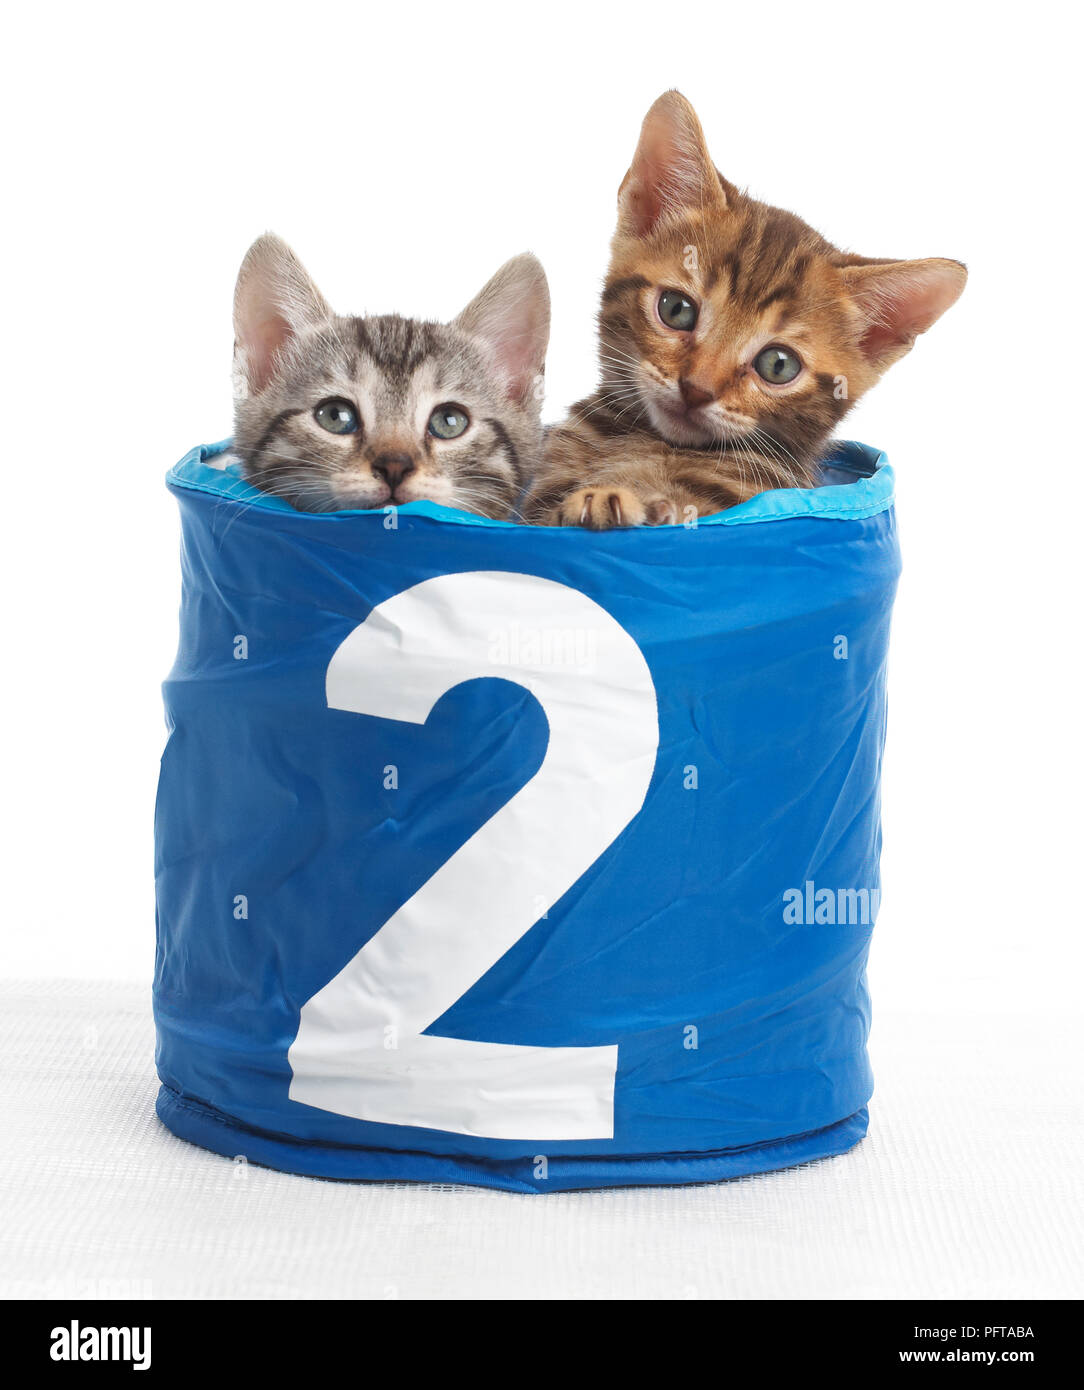 Kittens in basket with number 2 on the front, Bengal and British cross shorthair kittens, 5-week-old Stock Photo